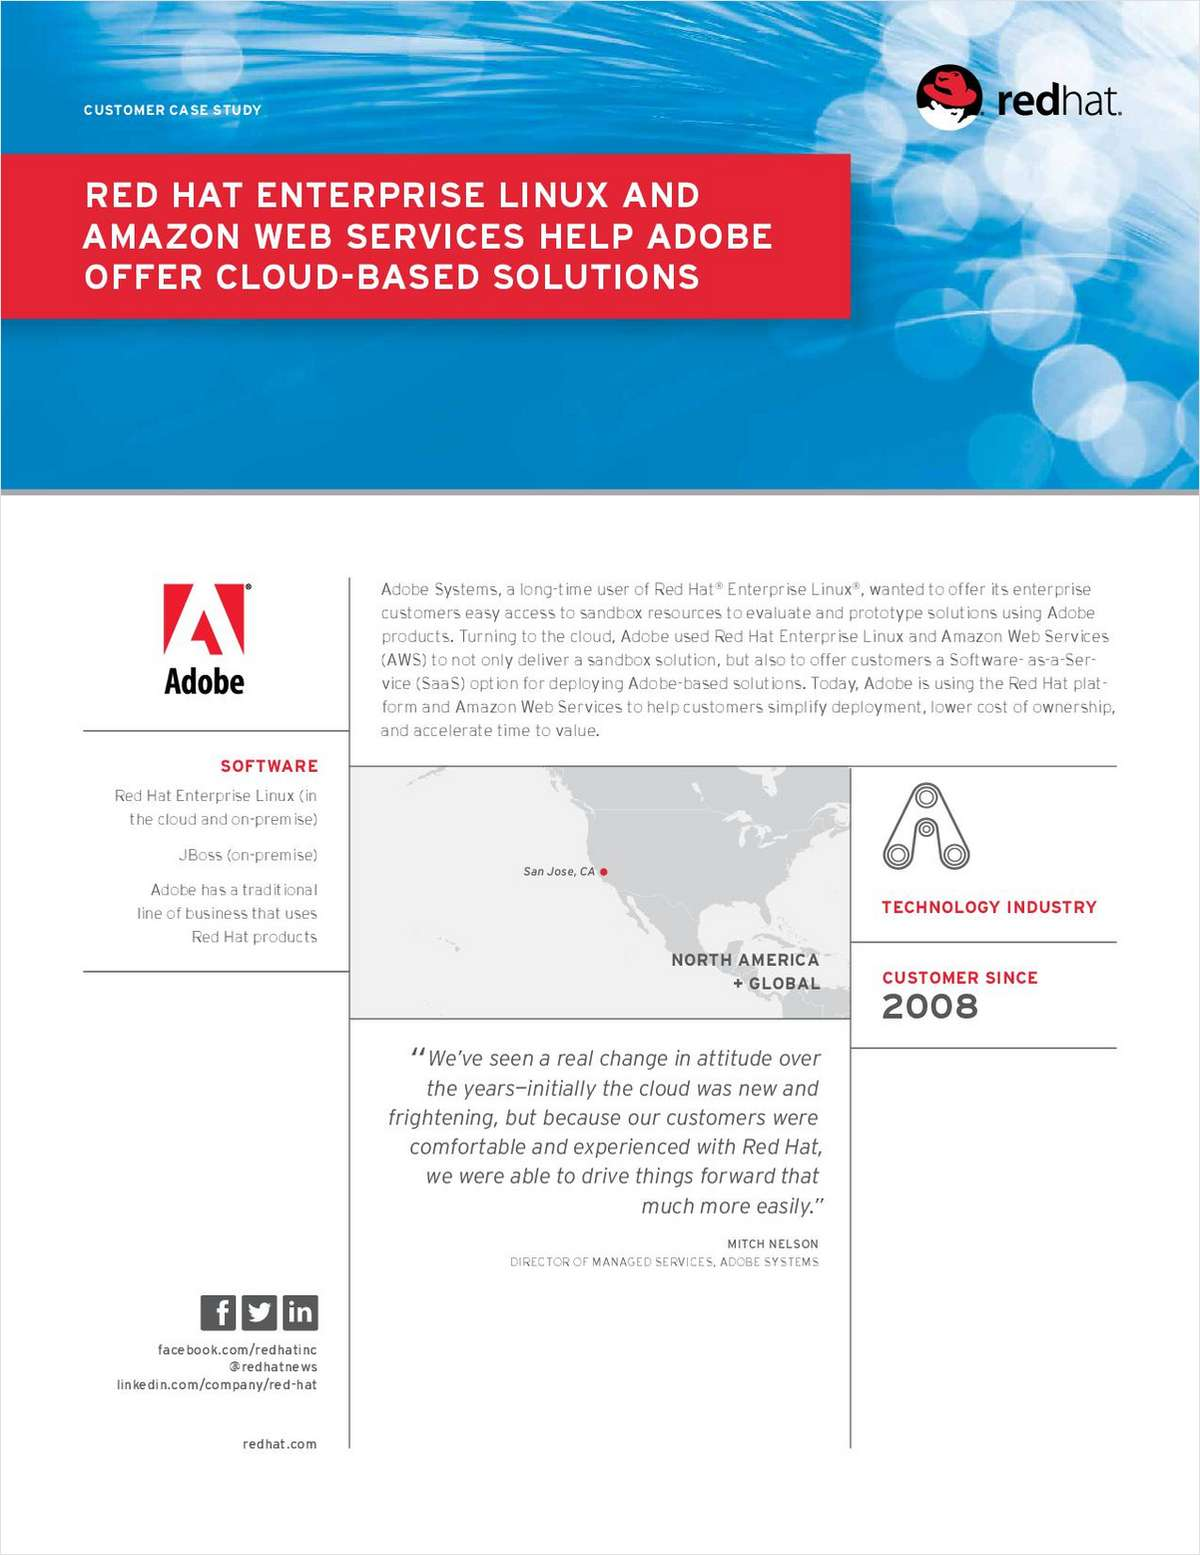 Red Hat Enterprise Linux and Amazon Web Services Help Adobe Offer Cloud-Based Solutions